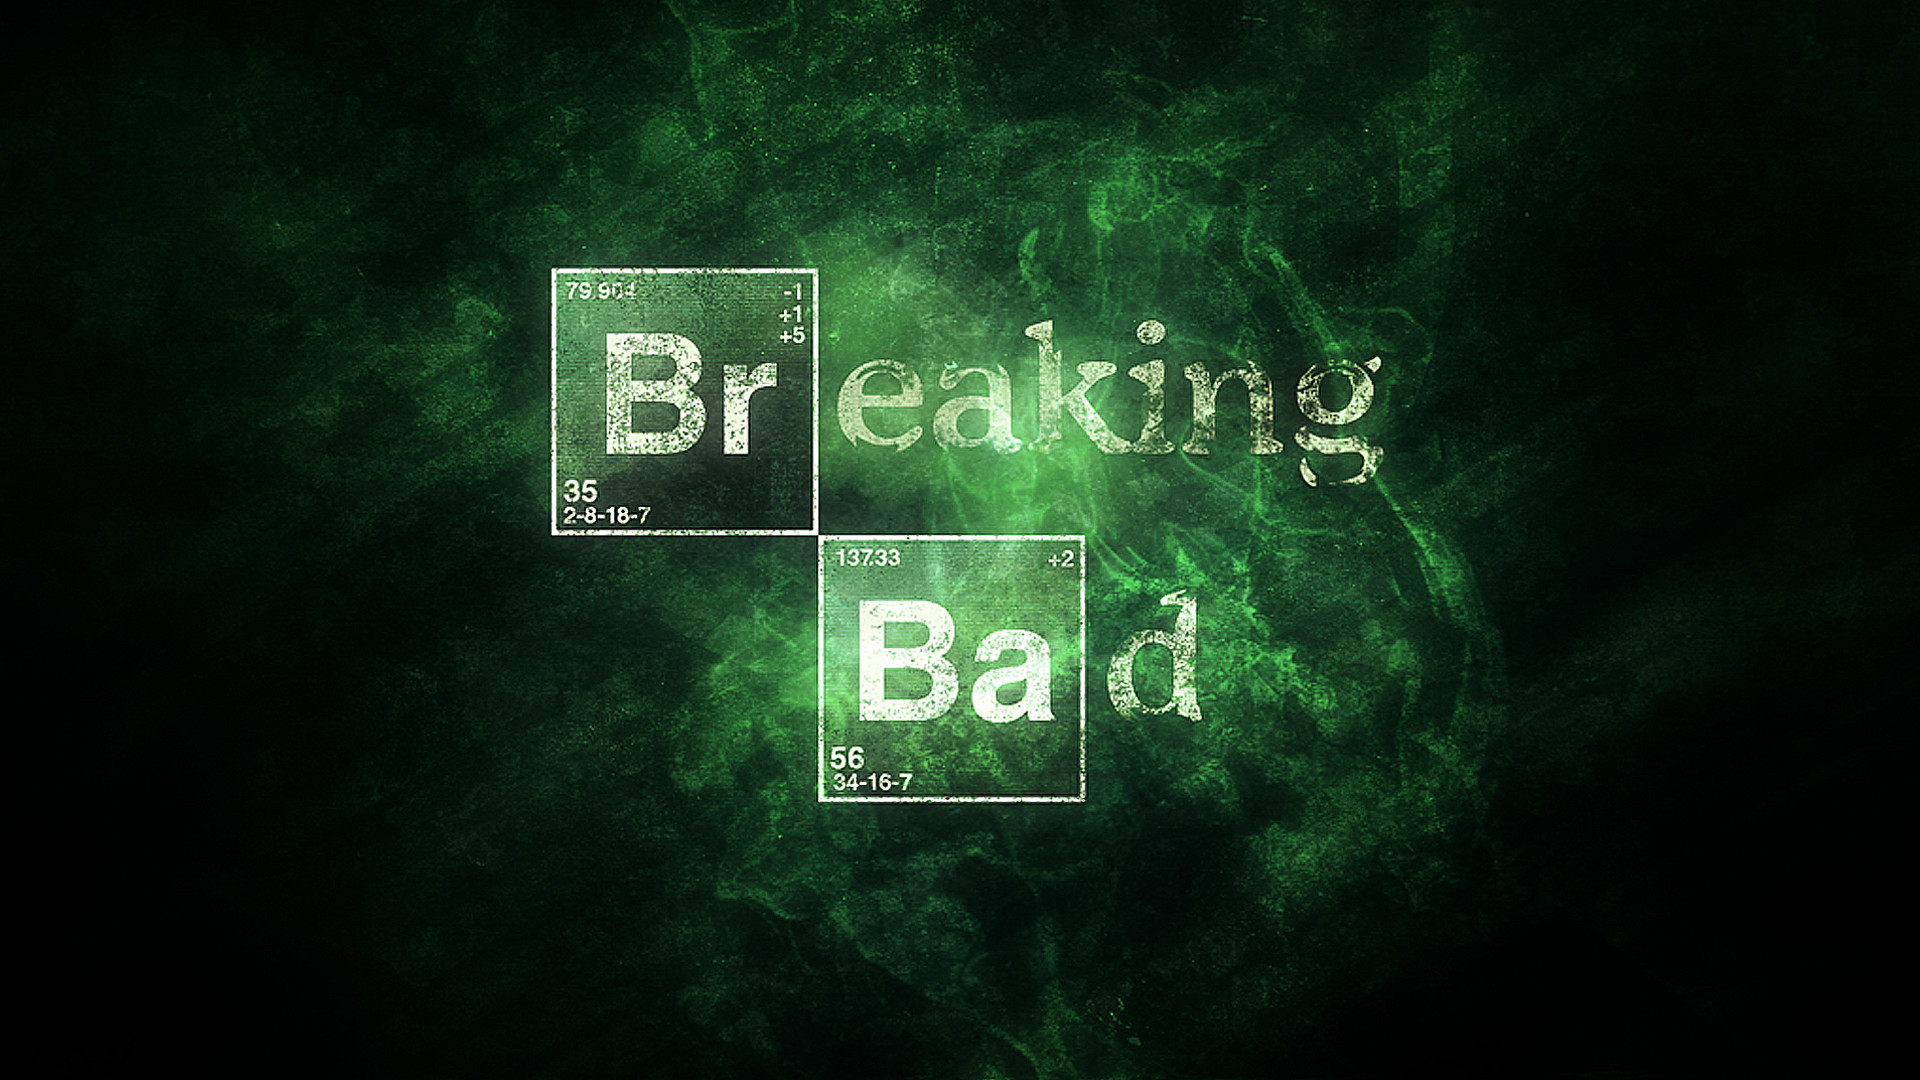 1920x1080 Breaking Bad Wallpaper by MuFFinFr3ak Breaking Bad Wallpaper by MuFFinFr3ak